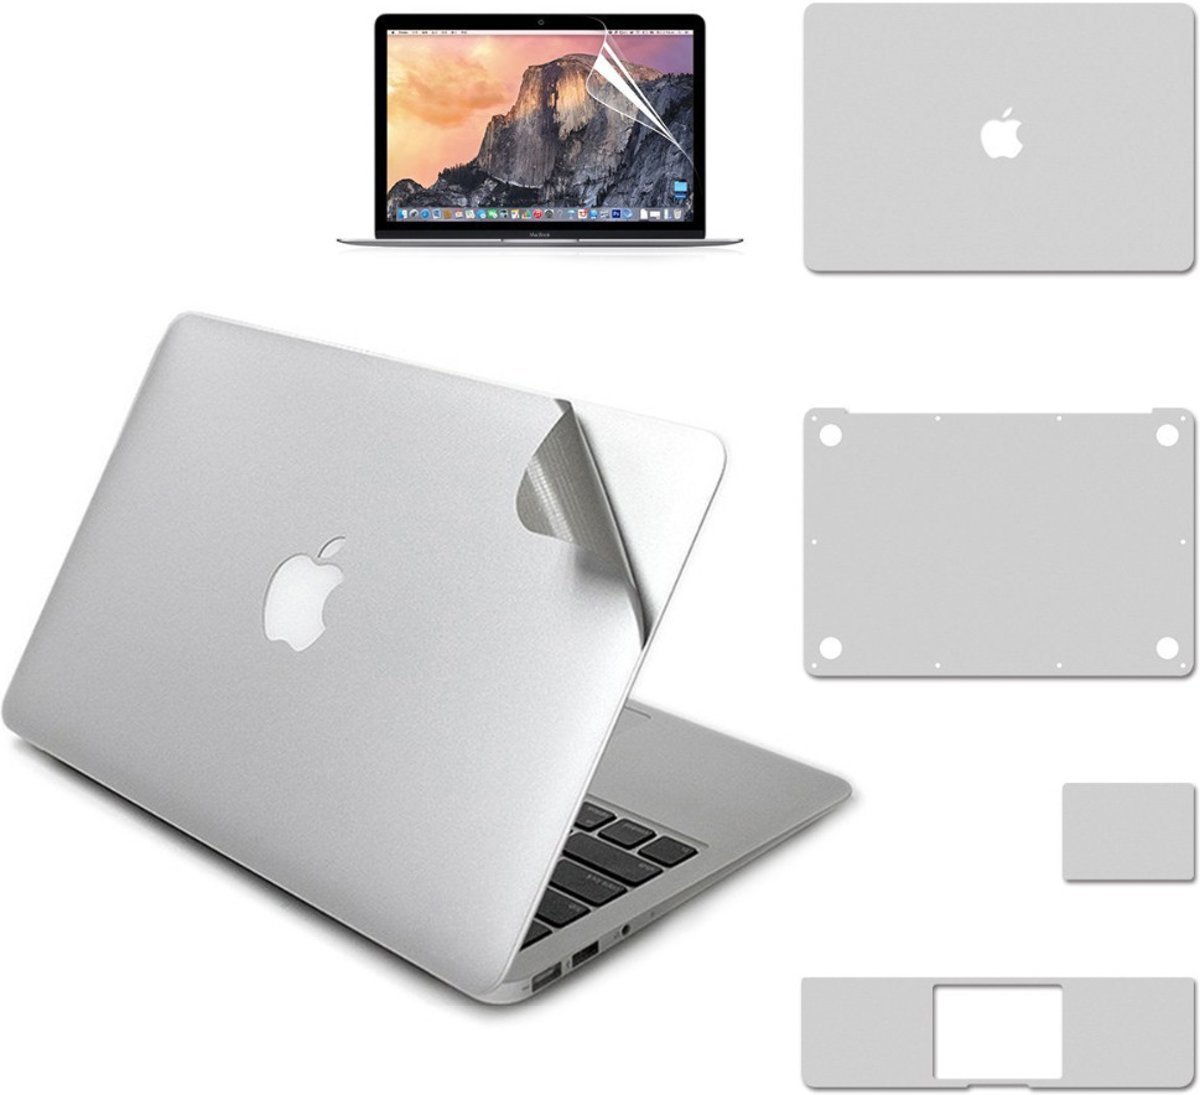 5-in-1 Nano Body Guard Anti Scratch 3M Protector voor Apple MacBook Air 13 inch  - Zilver